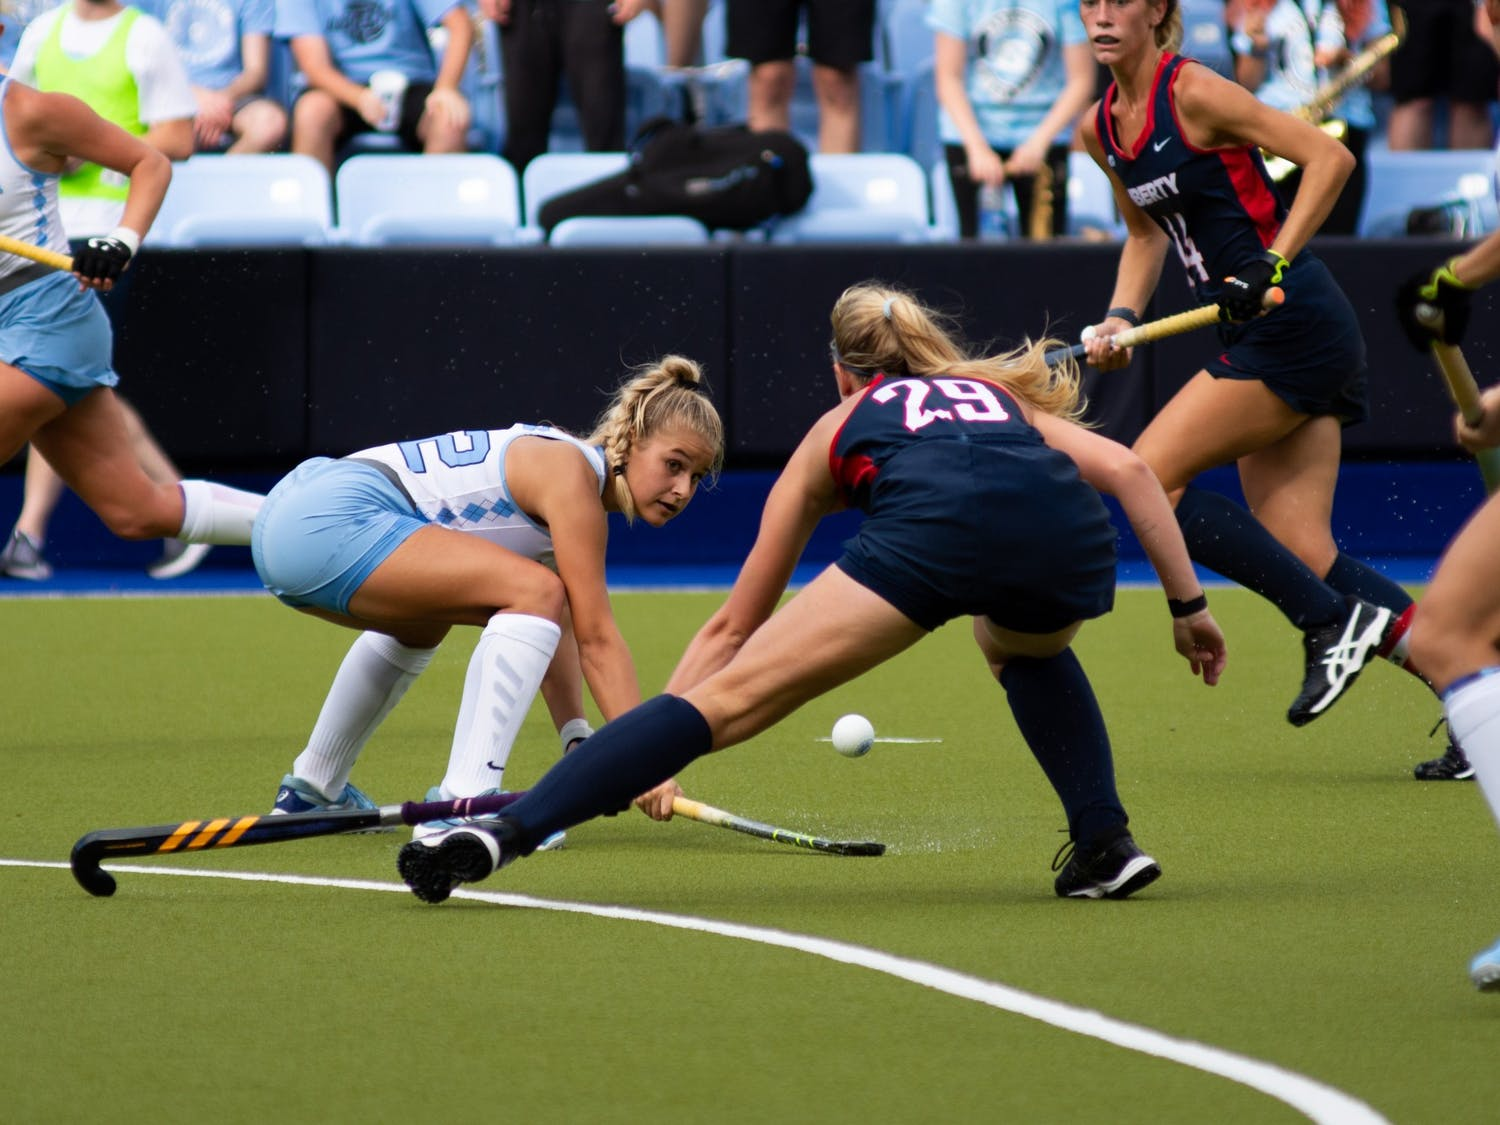 Freshman midfielder Jasmina Smolenaars (22) goes for the ball during UNC's Oct. 10 field hockey game against Liberty. The game proved to be a loss for the Tar Heels–Liberty headed home with a 4-0 win.